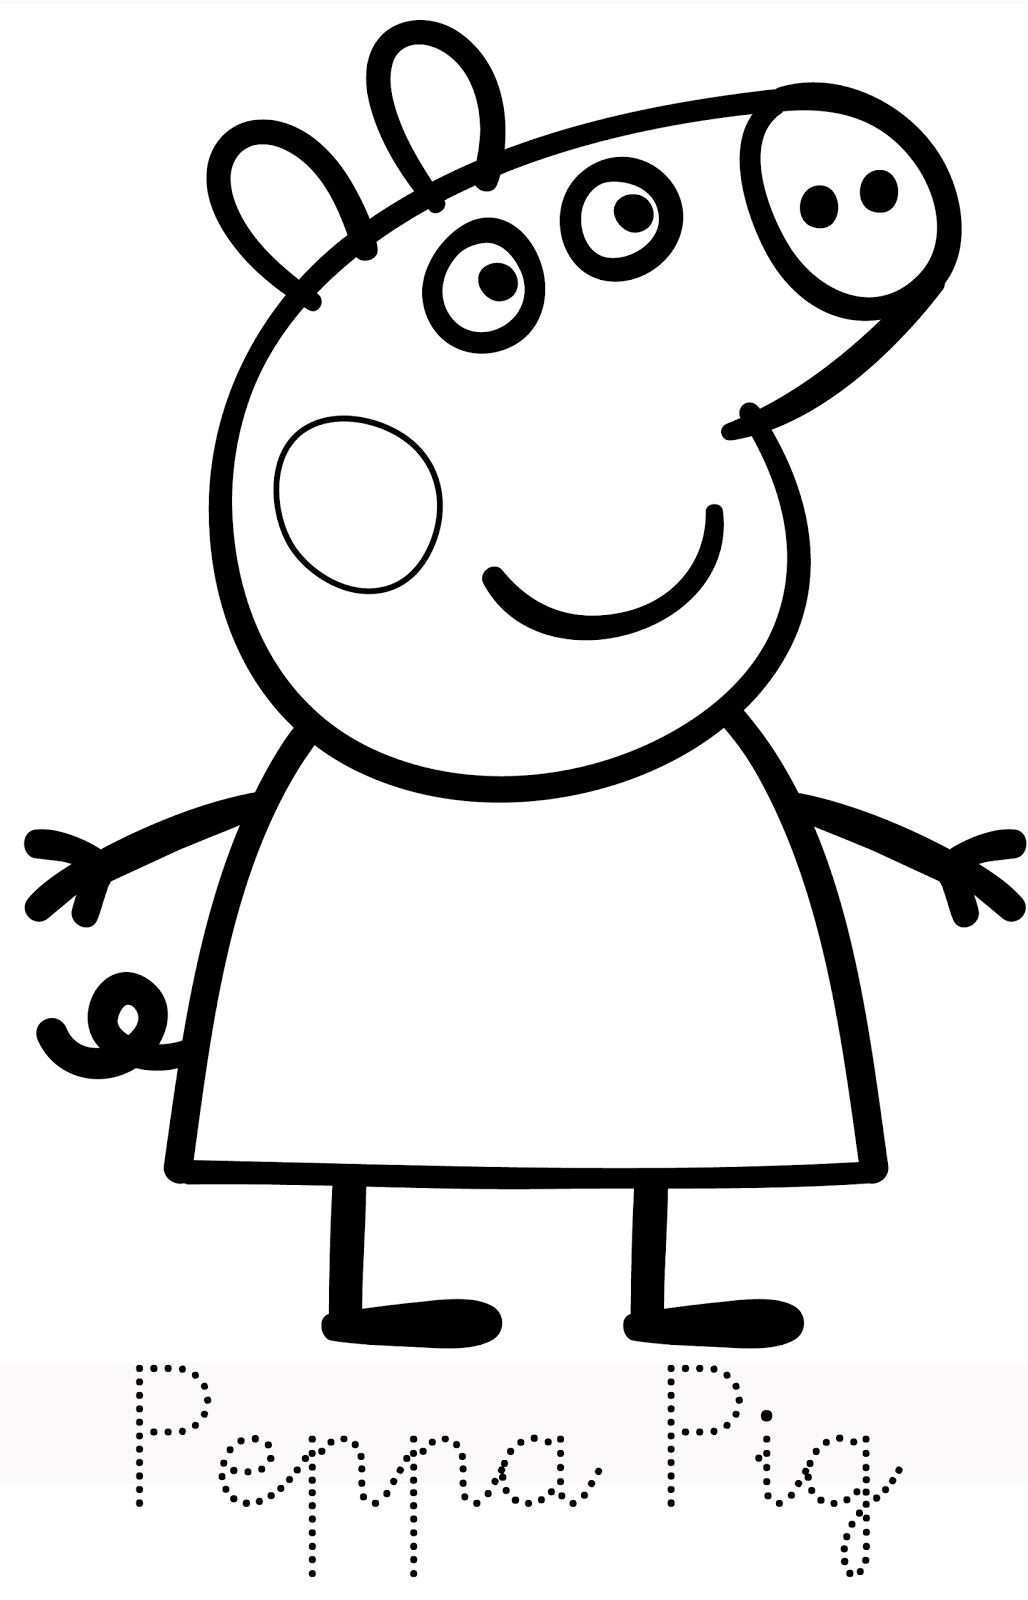 Peppa Pig Coloring Pages Best Coloring Pages For Kids Peppa Pig Colouring Peppa Pig Coloring Pages Peppa Pig Birthday Party